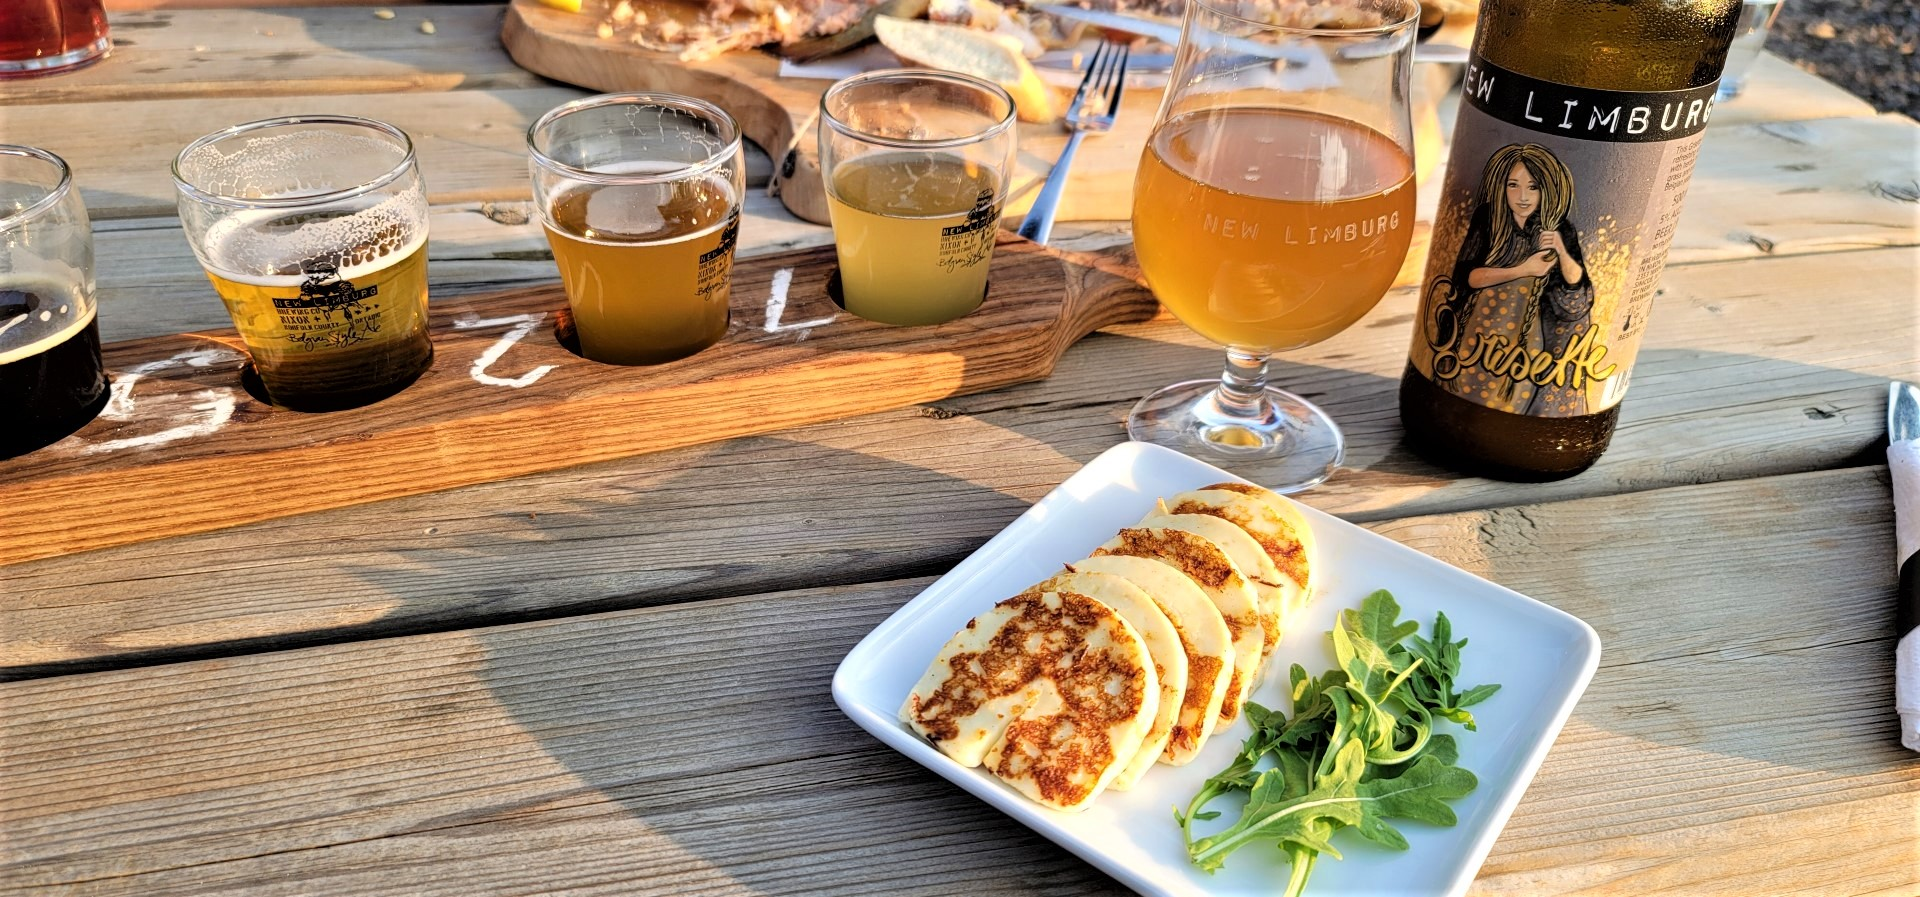 grilled halloumi and beer